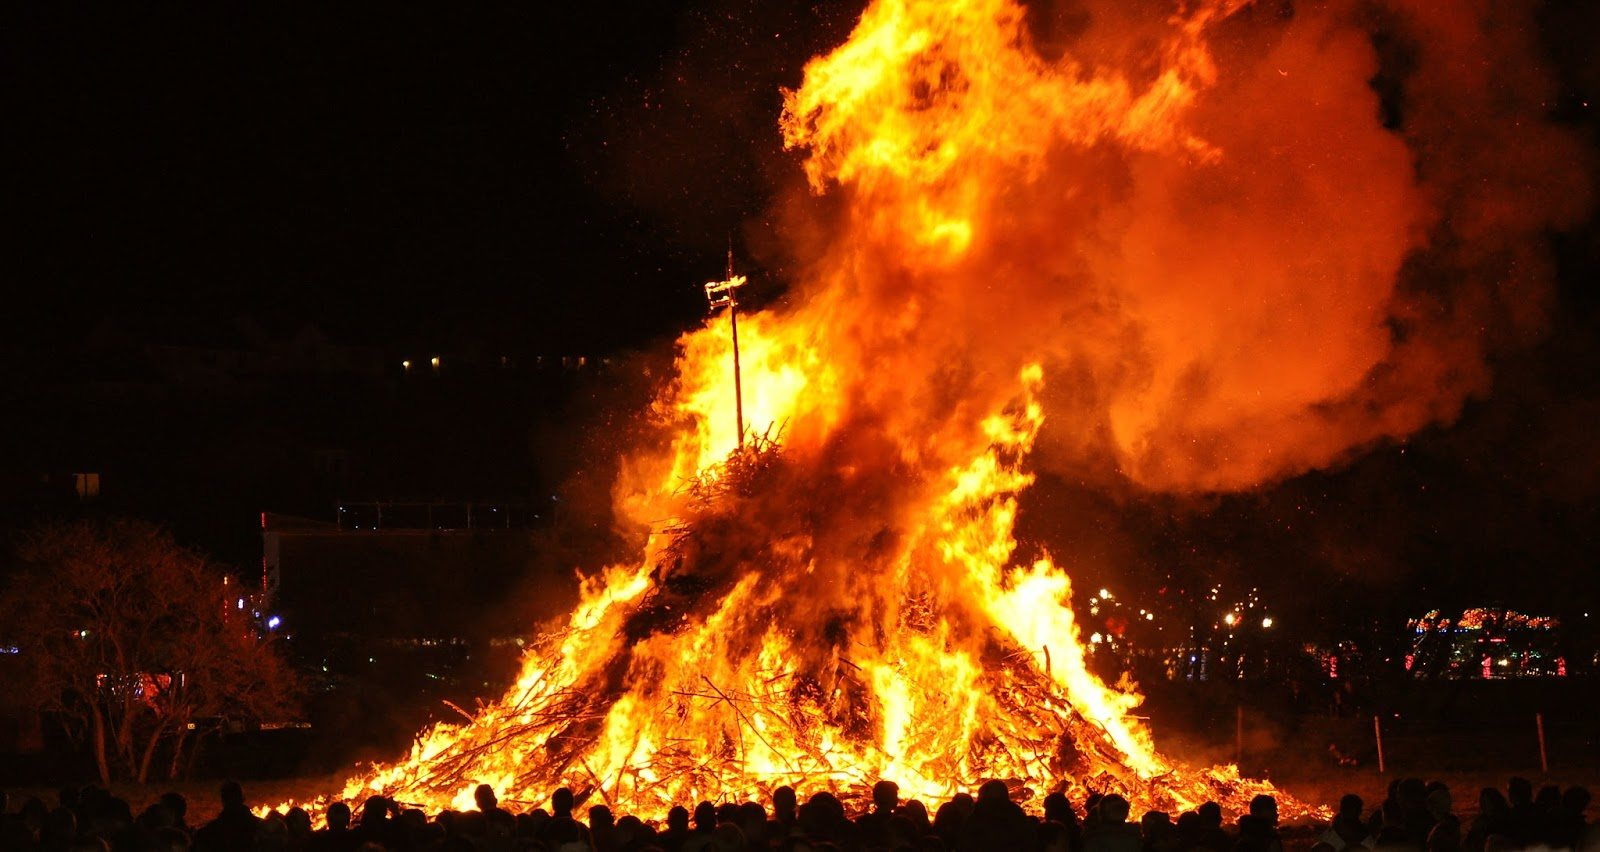 Enormous Bonfire. Bonfire Night